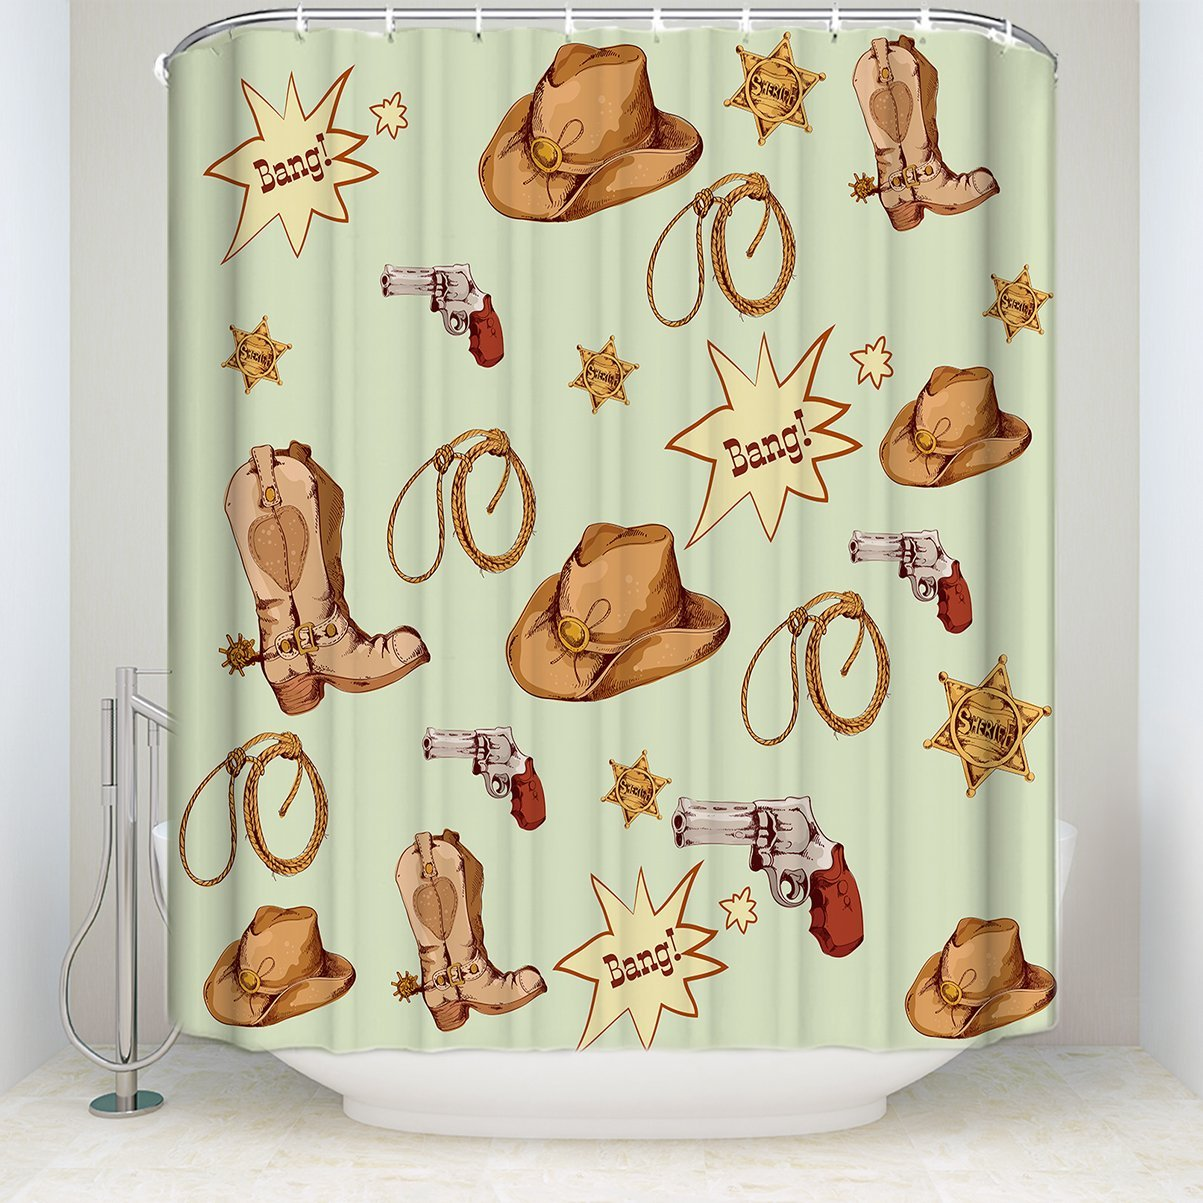 Art Gallery Shower Curtain Cowboy Pistol Hat Leather Whip Medal Pattern Funny Soft Comfort With Hooks